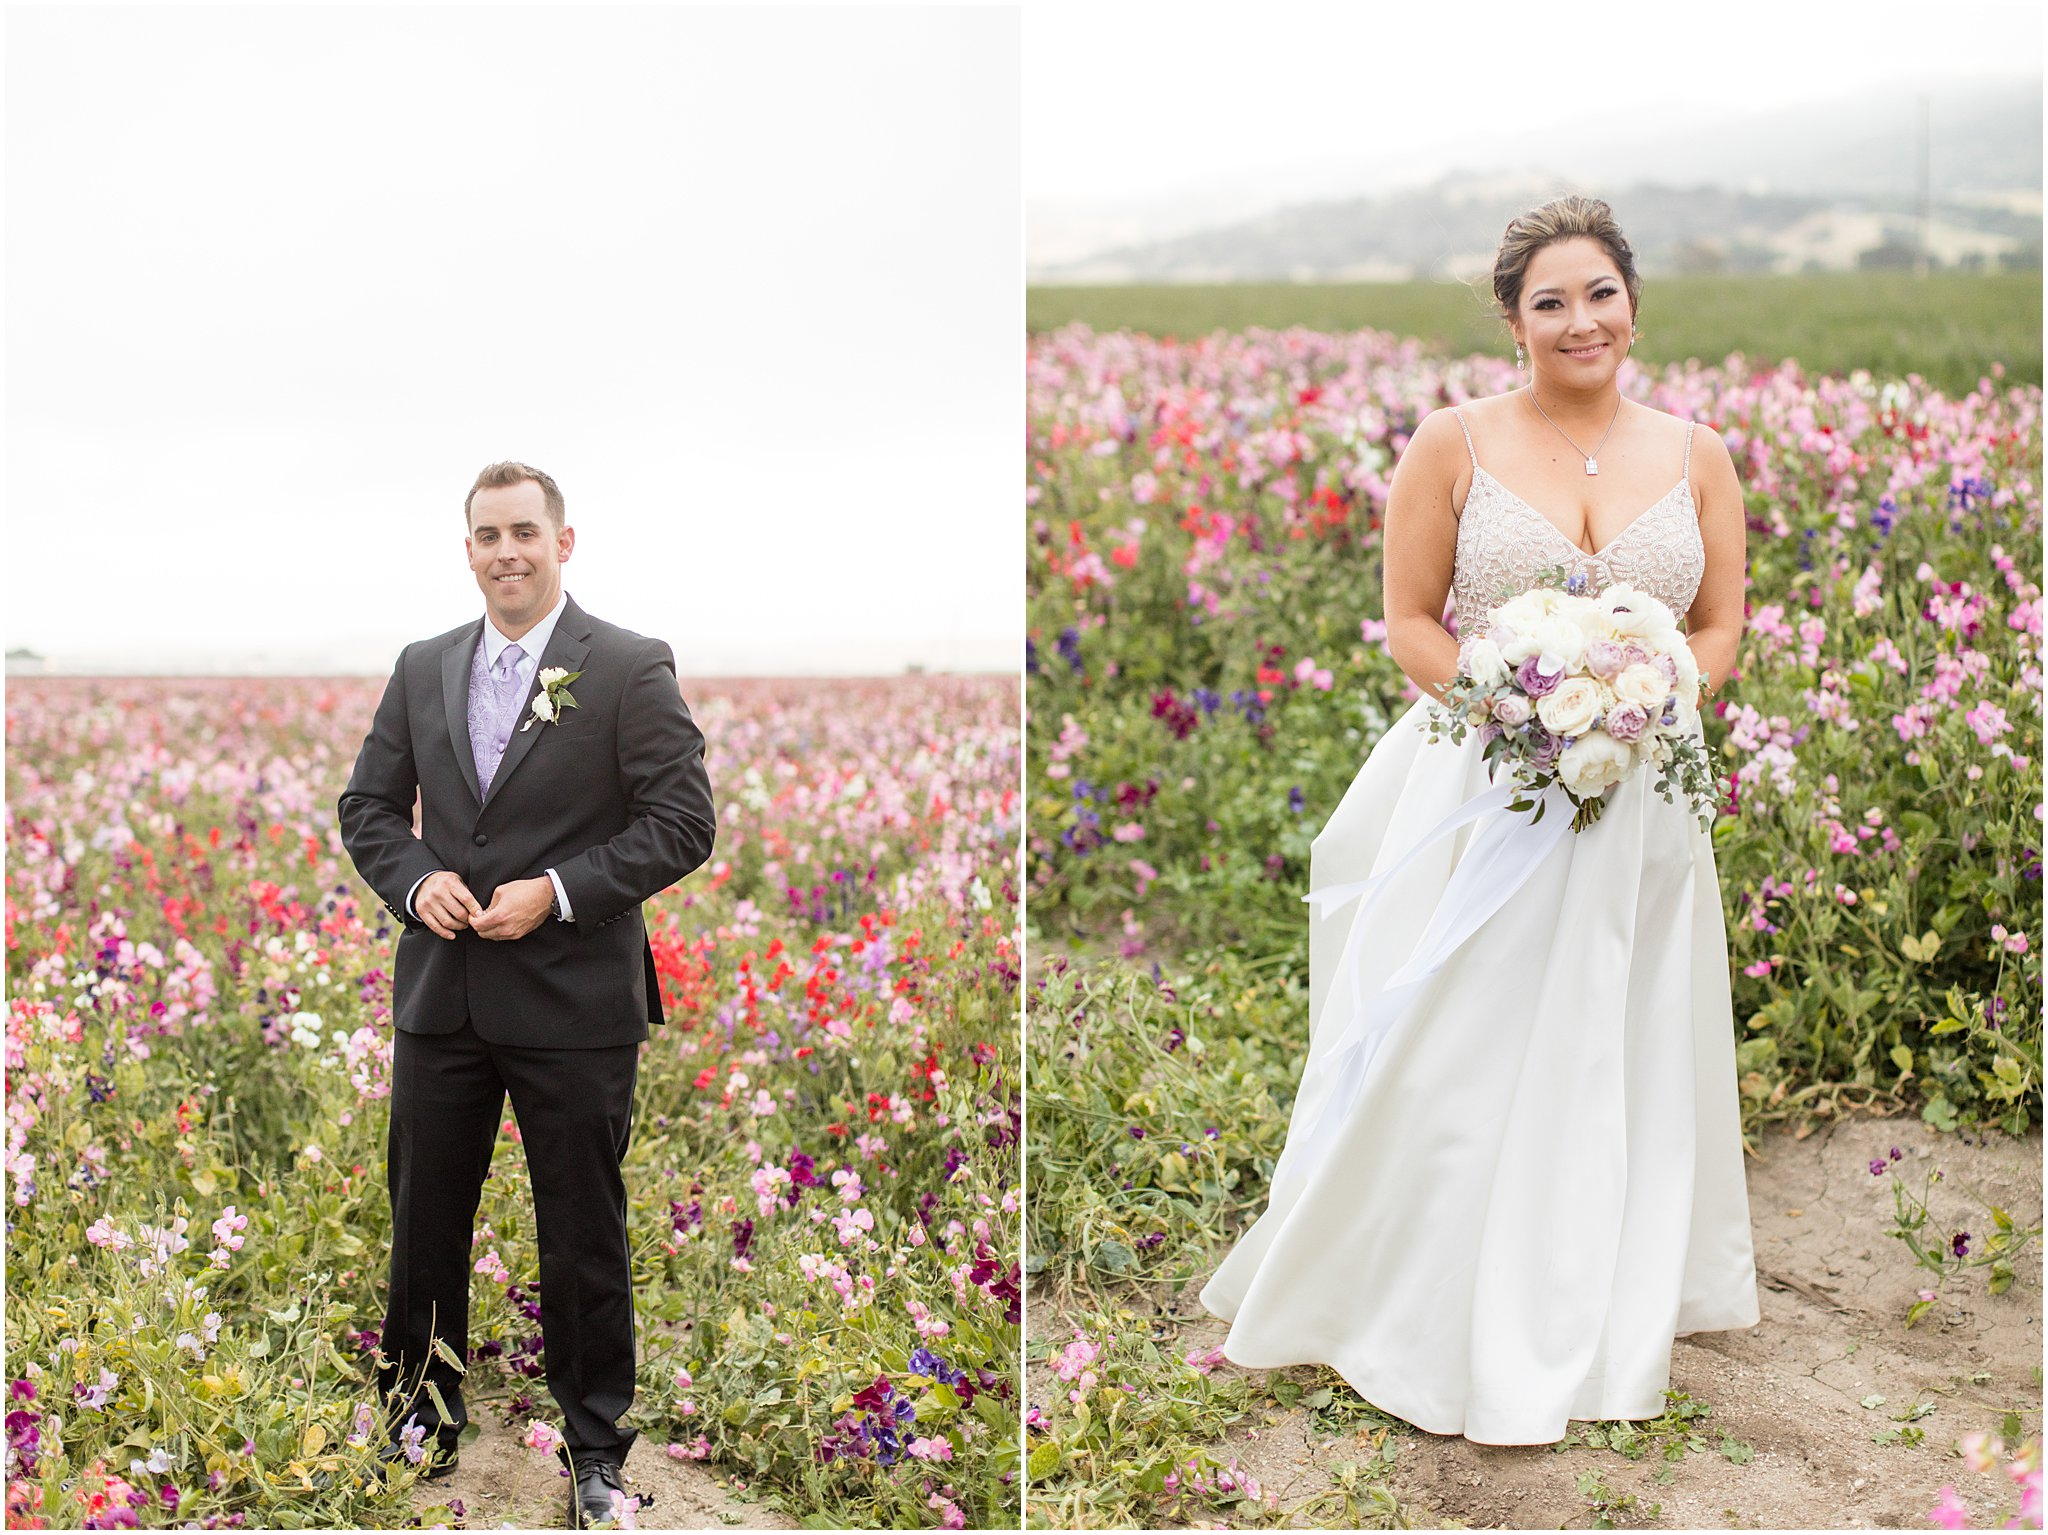 2019 wedding san juan bautista hacienda de leal vineyards bay area wedding photographer_0093.jpg